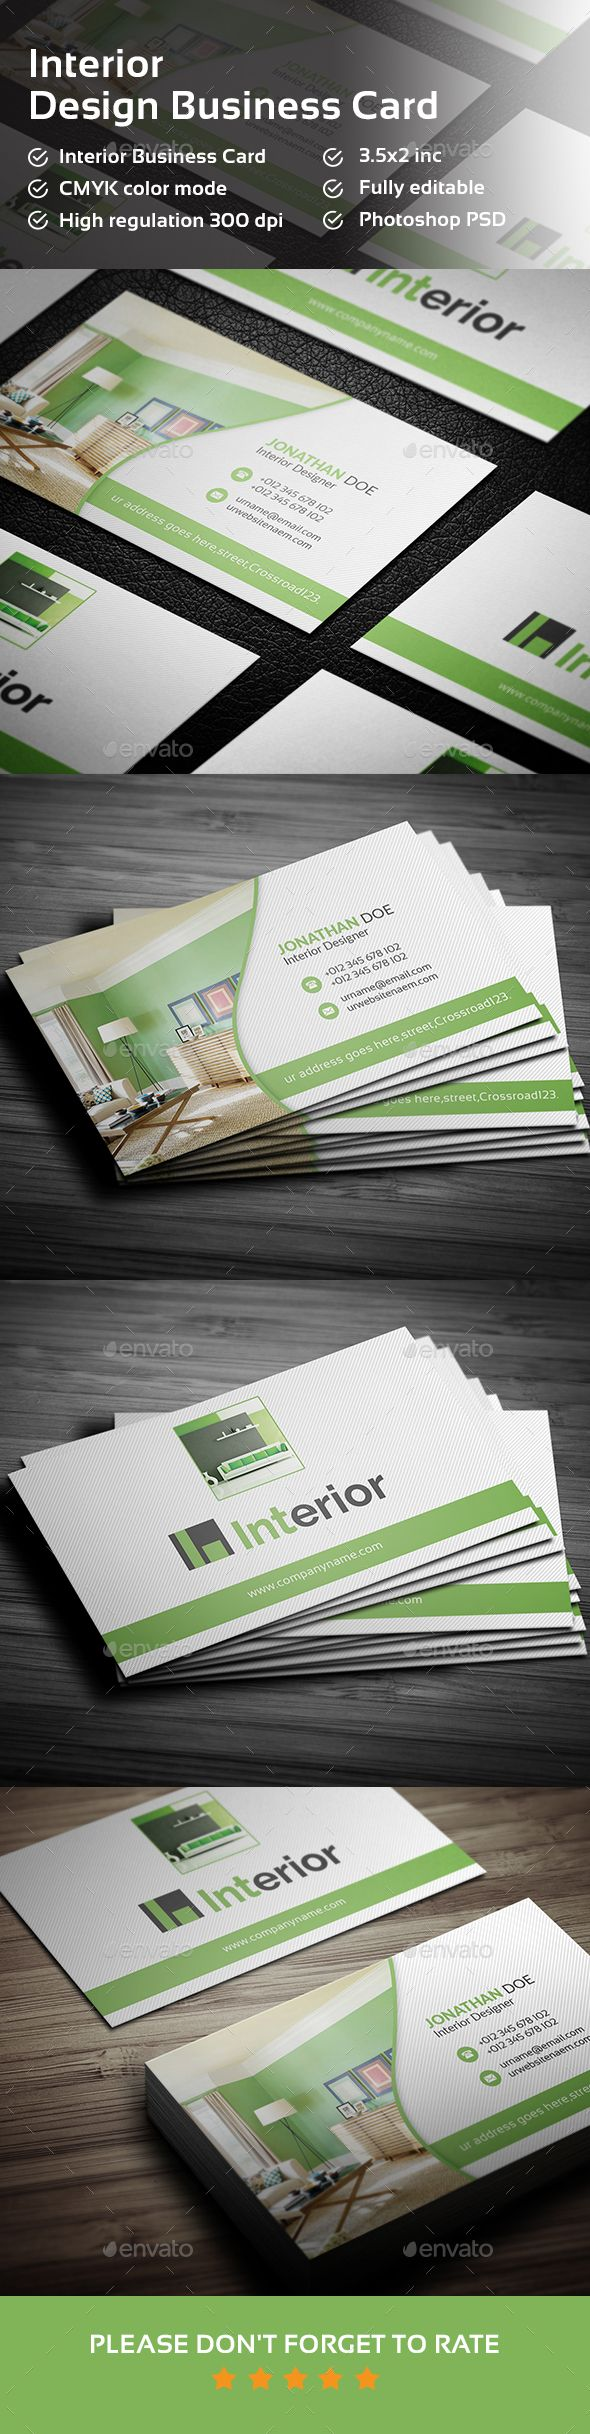 Interior Design Business Card Template PSD. Download here: http://graphicriver.net/item/interior-design-business-card-/15118104?ref=ksioks